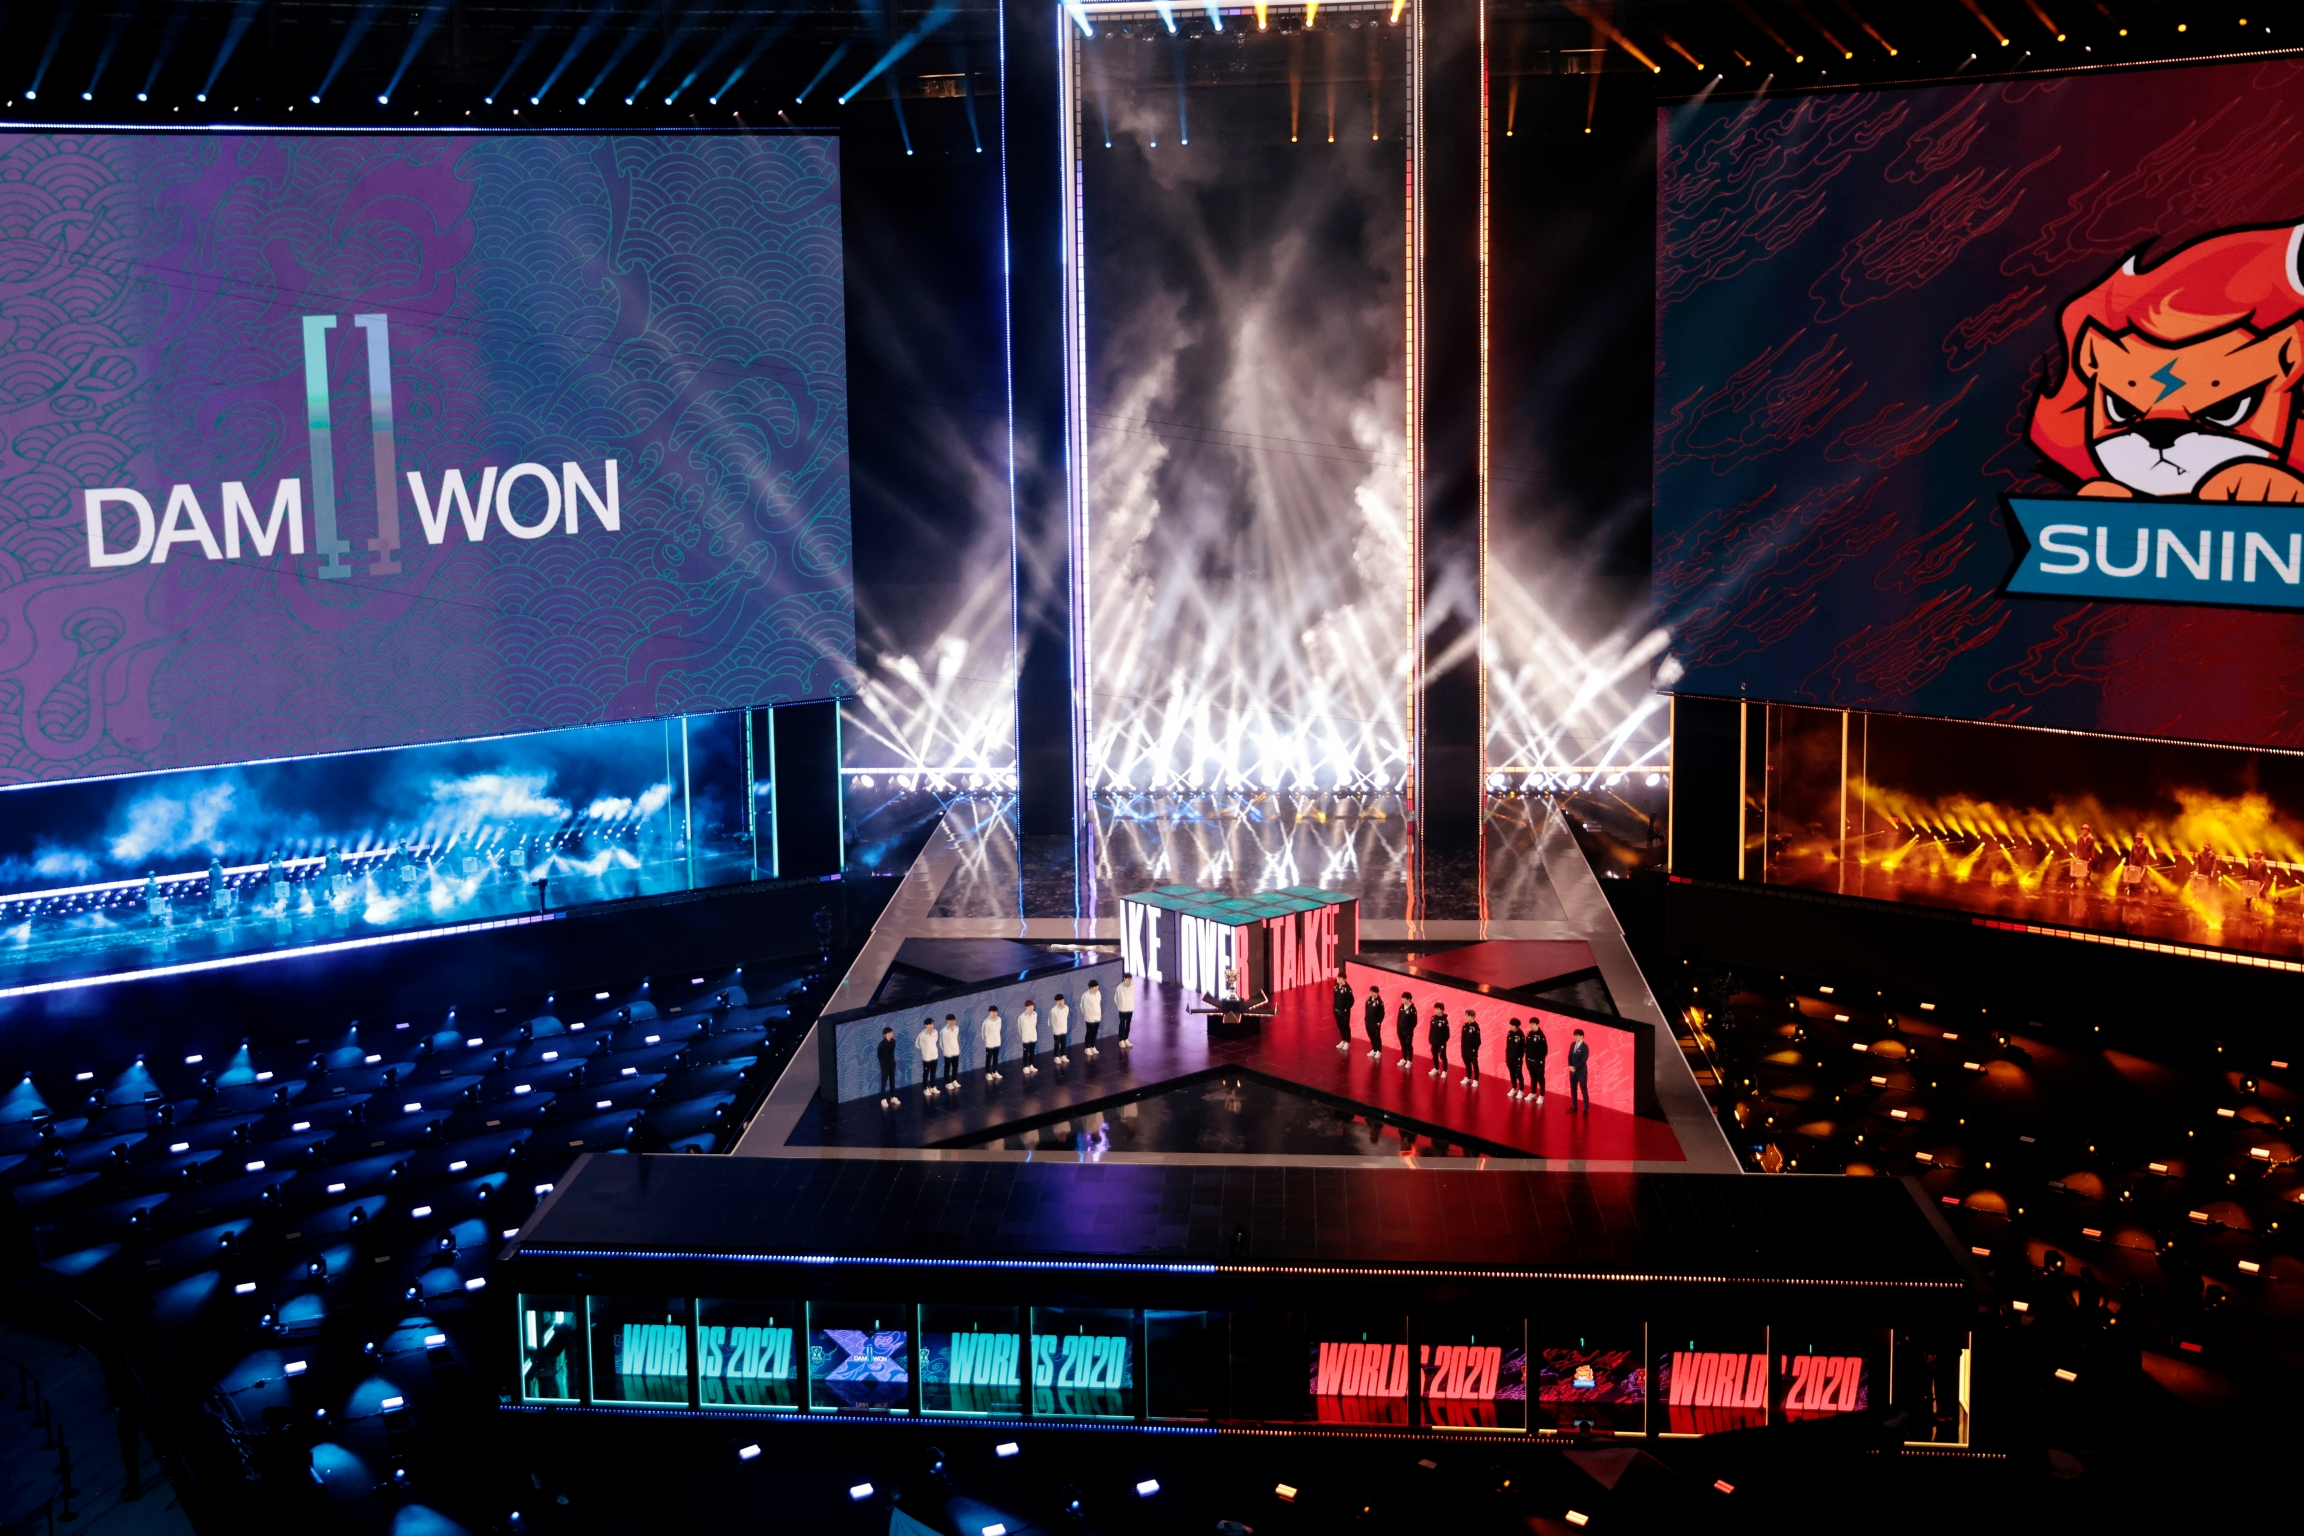 A huge stadium with blue, white and red lights features competitive esports players on stage.